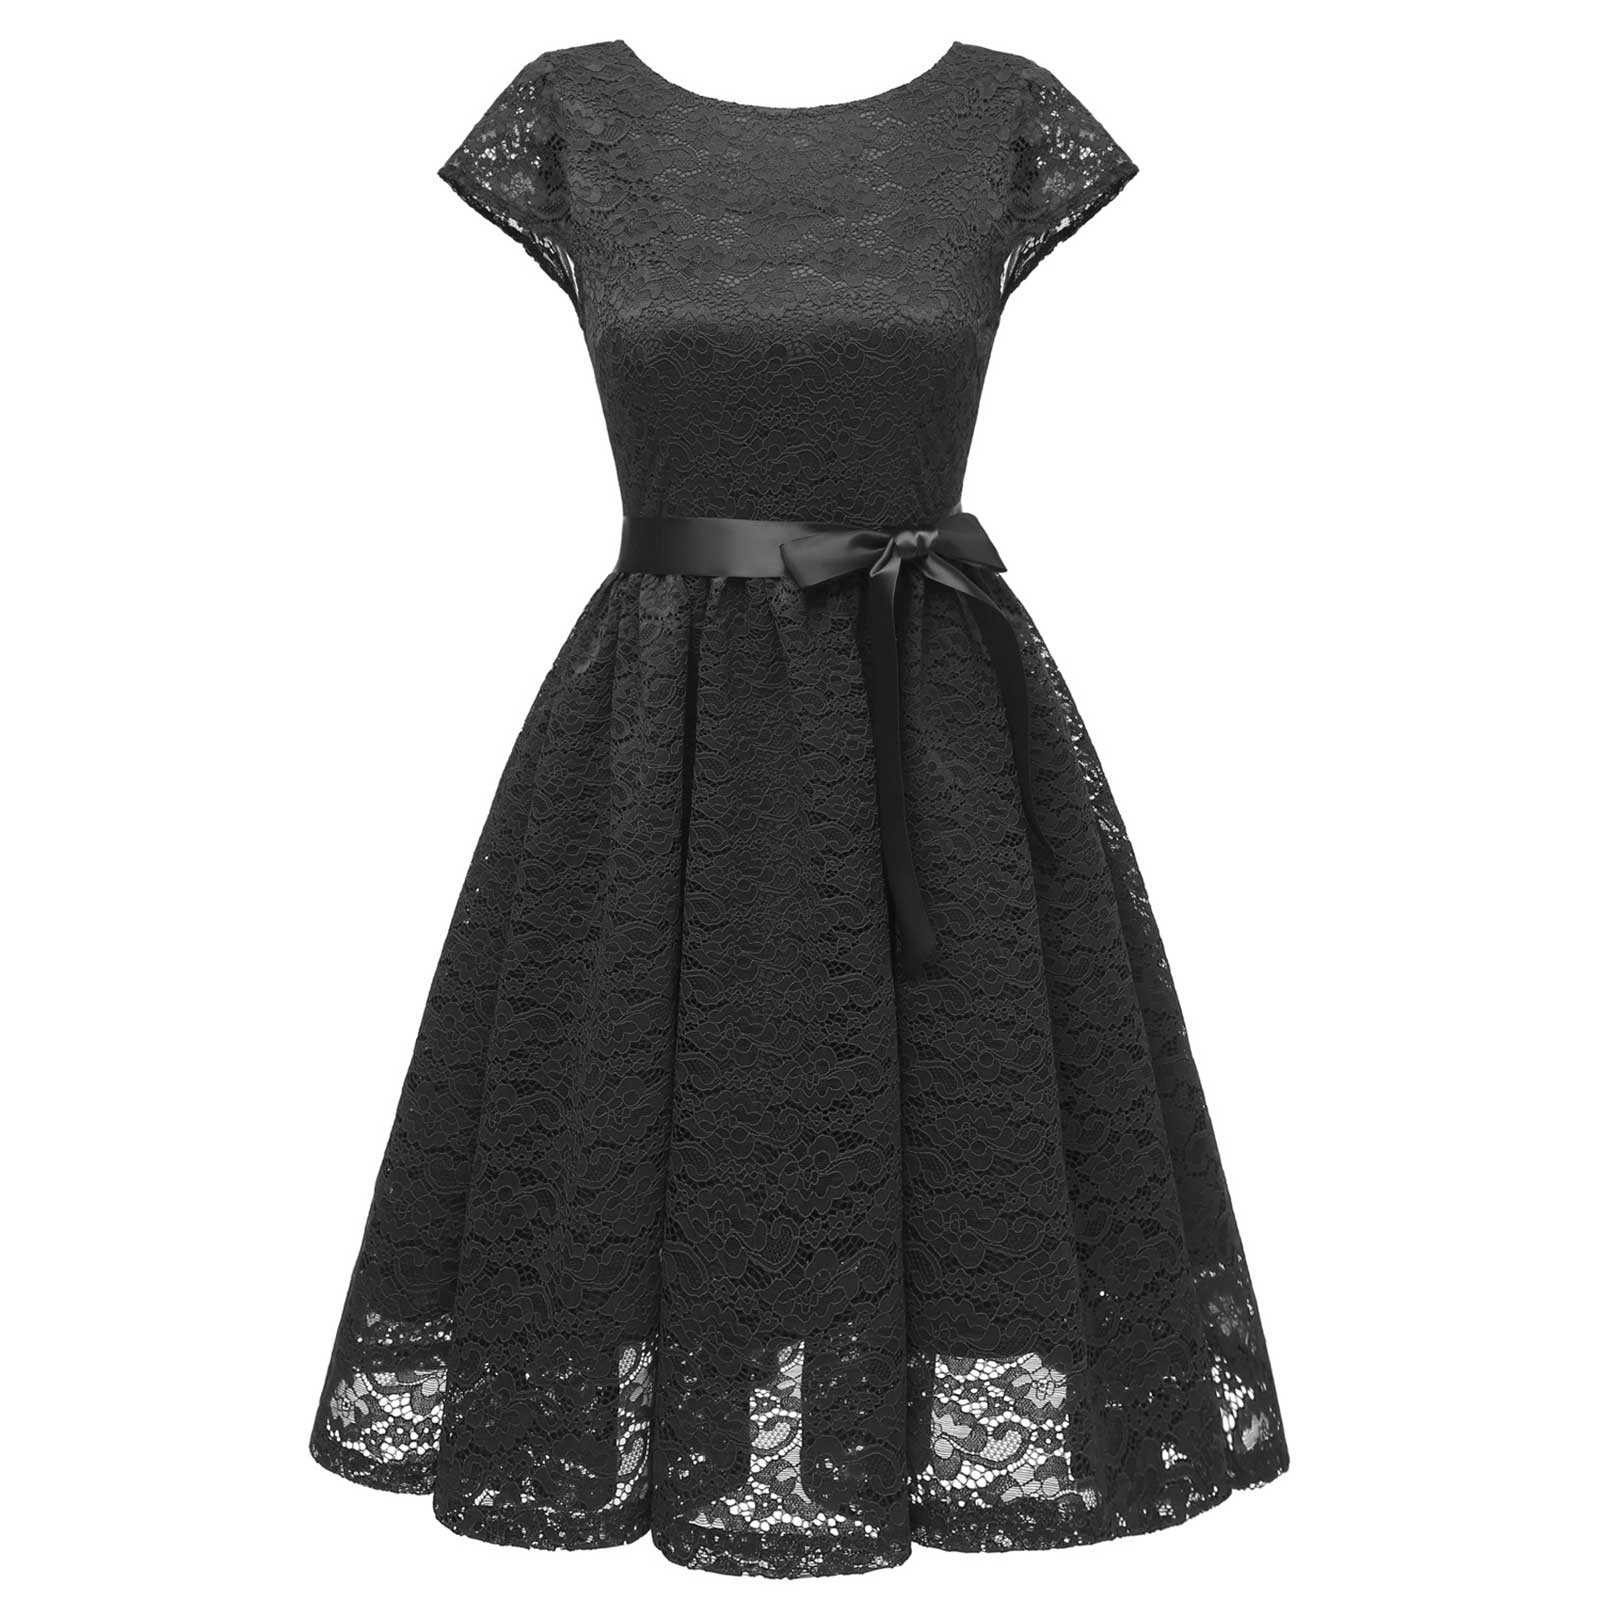 cde8e78be56 Women Bowknot Short Sleeve Fit and Flare A Line Vintage Lace Dress ...